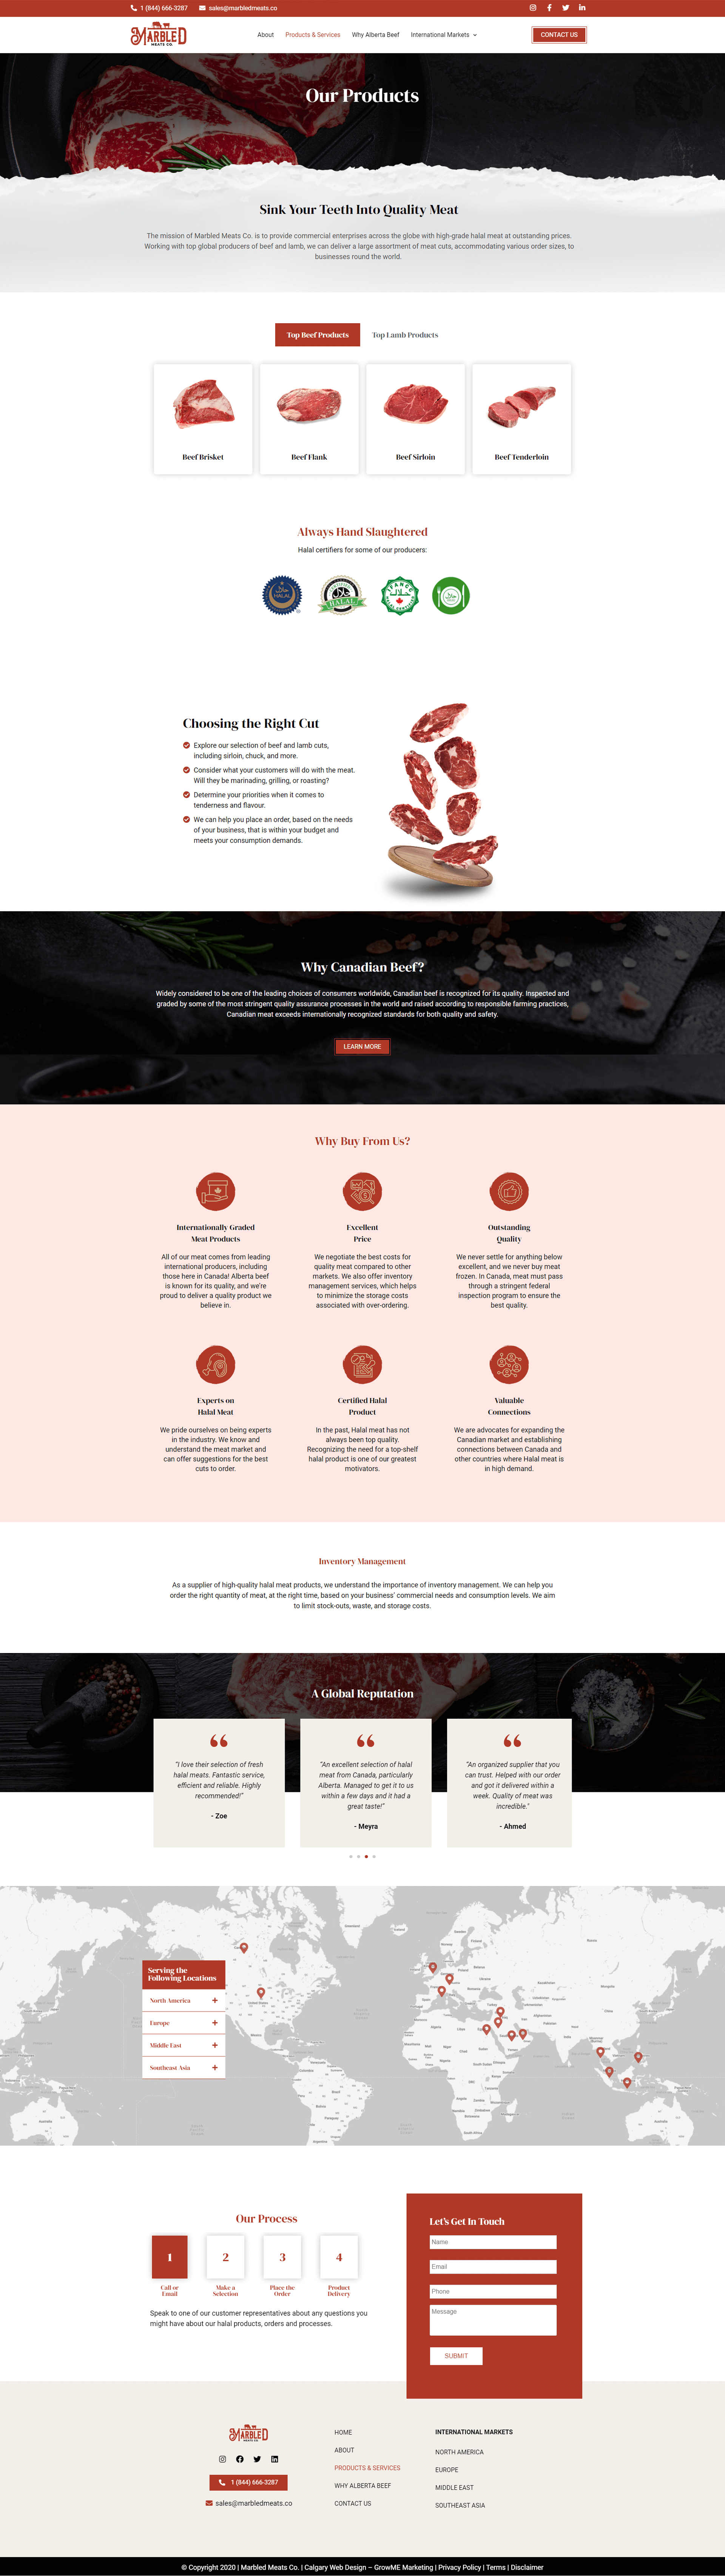 Marbled Meats Service Page